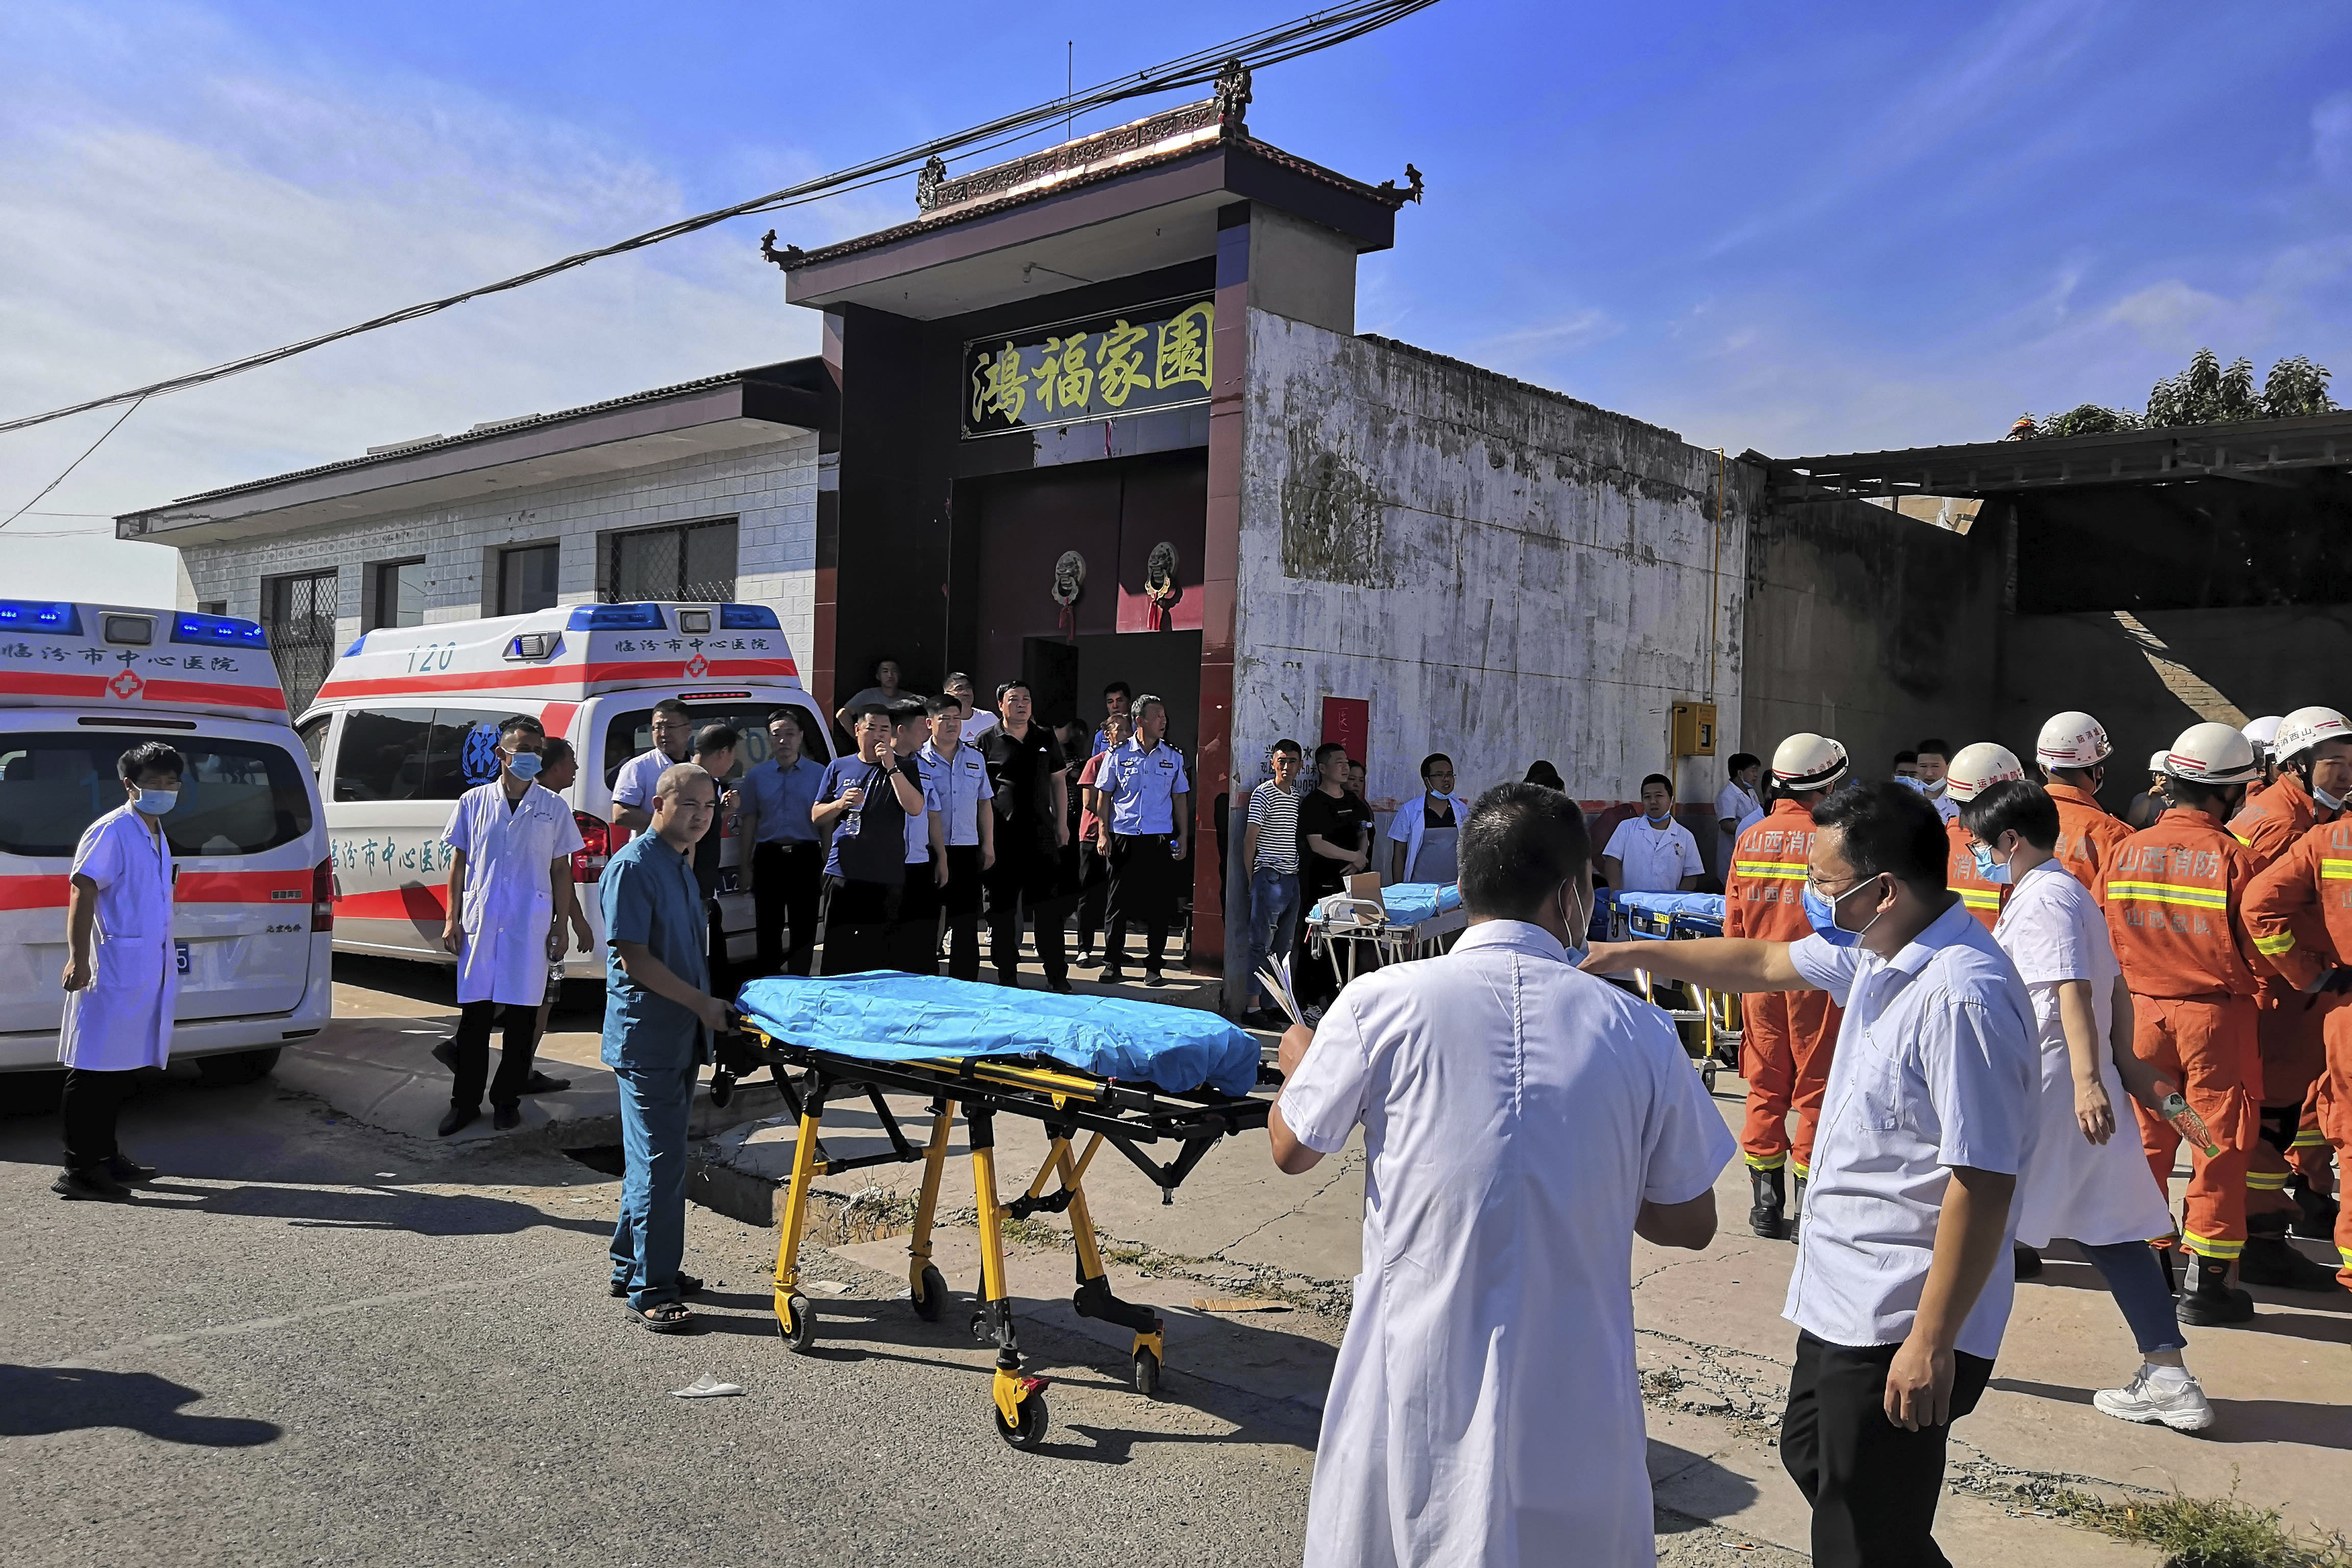 Rescuers and medics gather near the site of a collapsed two-story restaurant in Xiangfen county in northern China's Shanxi province on Saturday, Aug. 29, 2020. More than a dozen were killed after the restaurant collapse during a gathering. (Chinatopix Via AP)